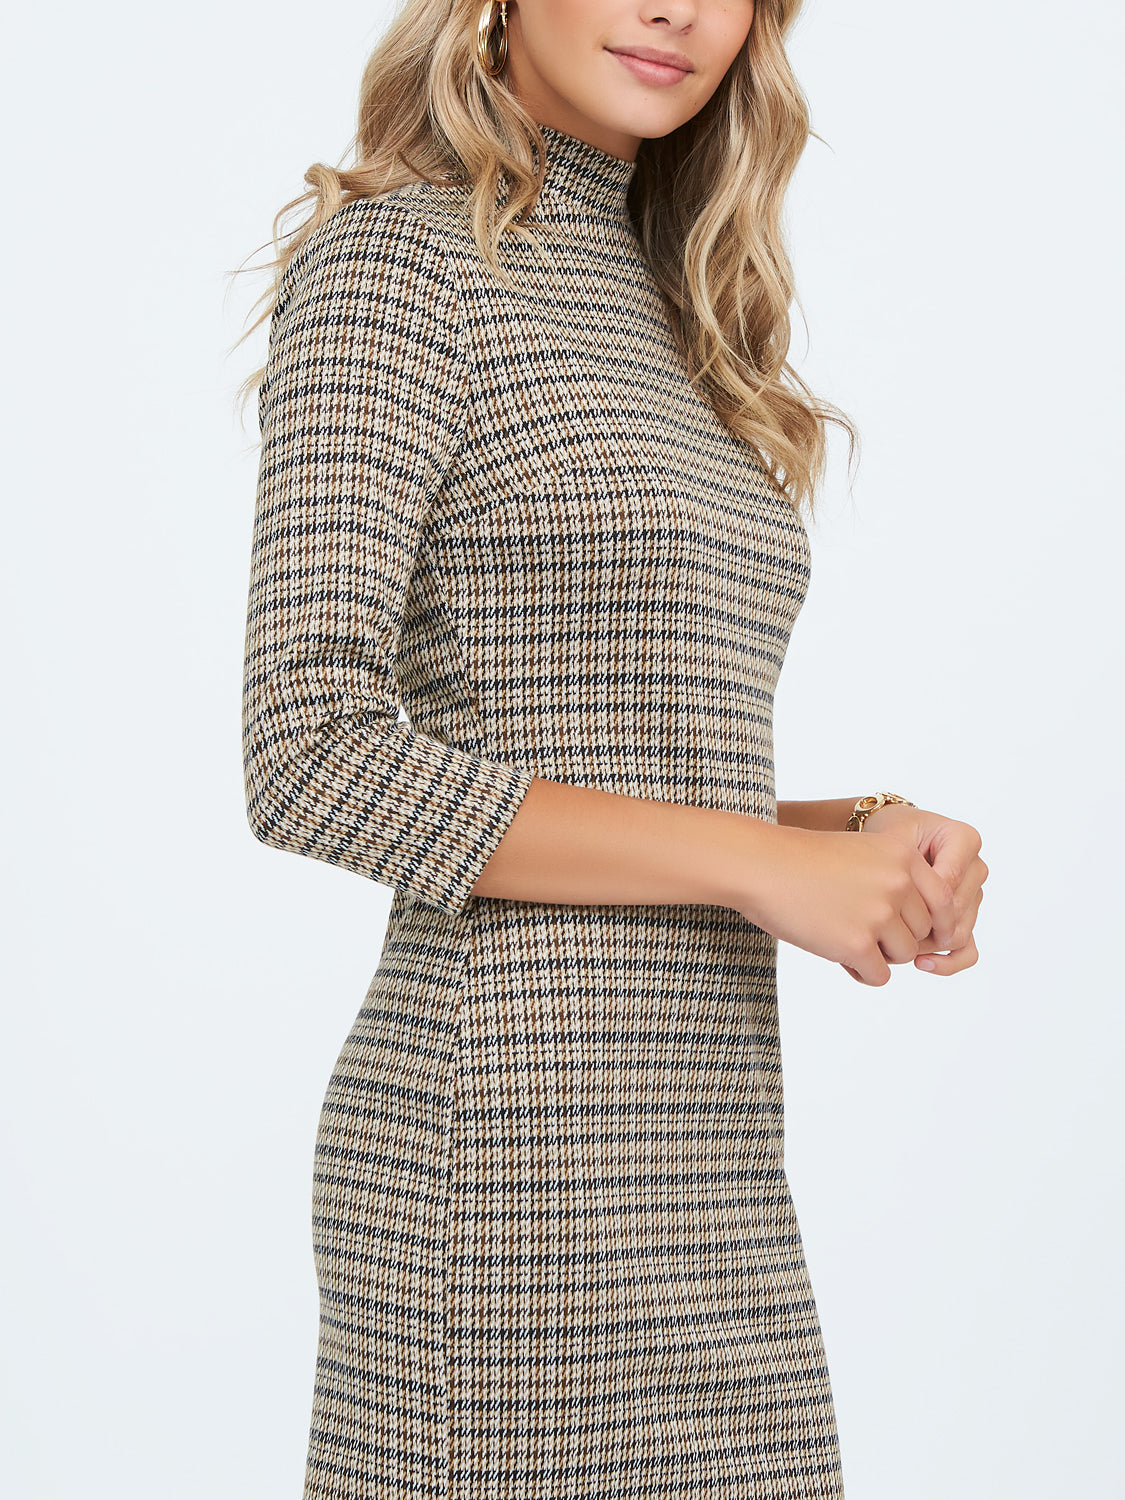 ¾ Sleeve Mock Neck Sheath Dress